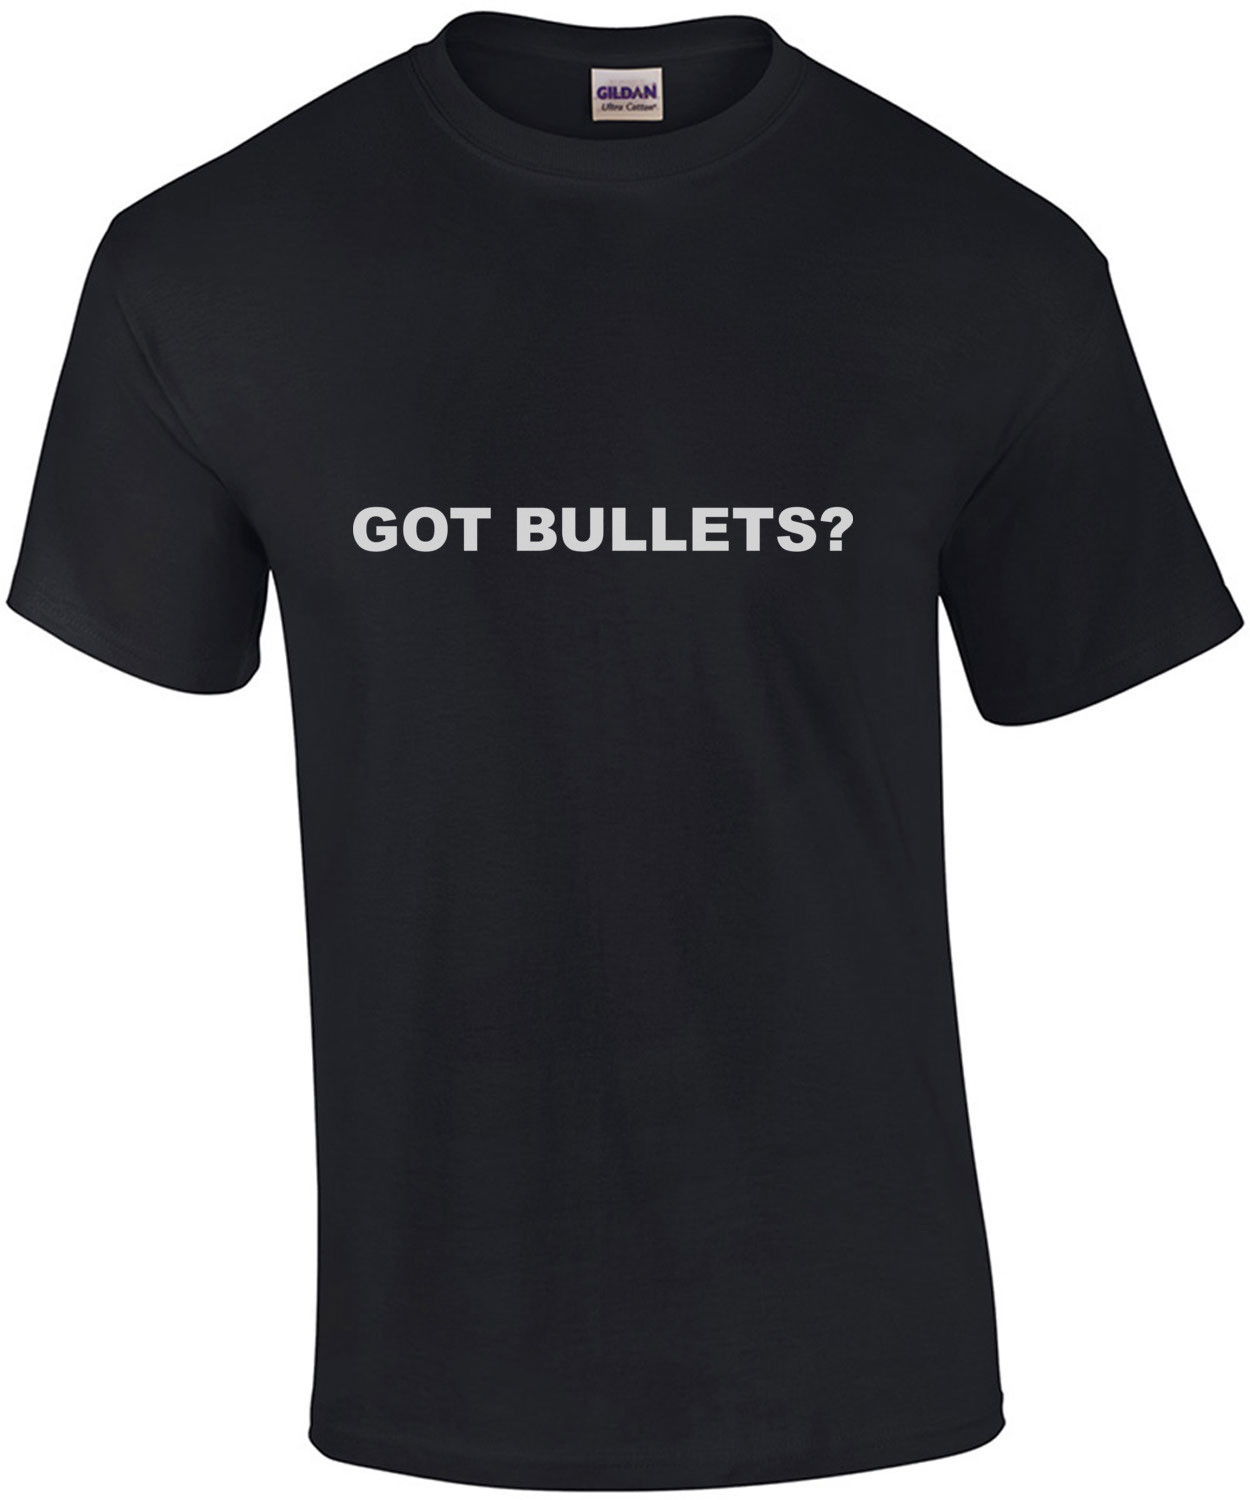 GOT BULLETS? Gun T-Shirt